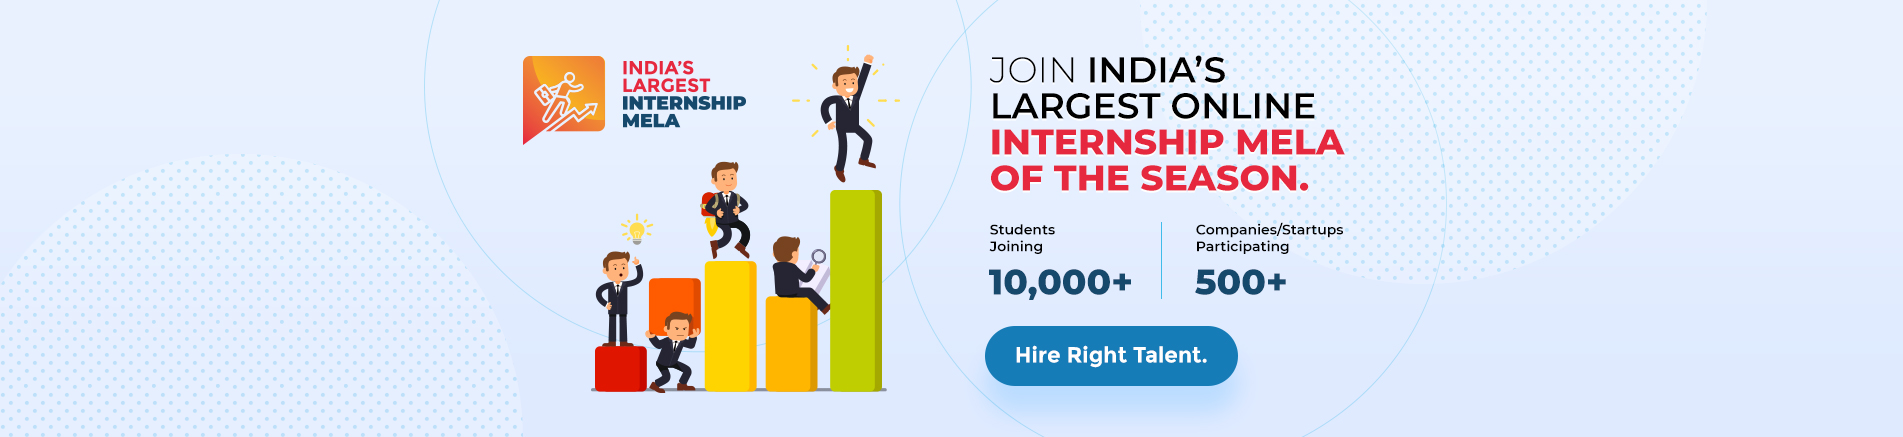 The Grand Monsoon Internship Mela 2019